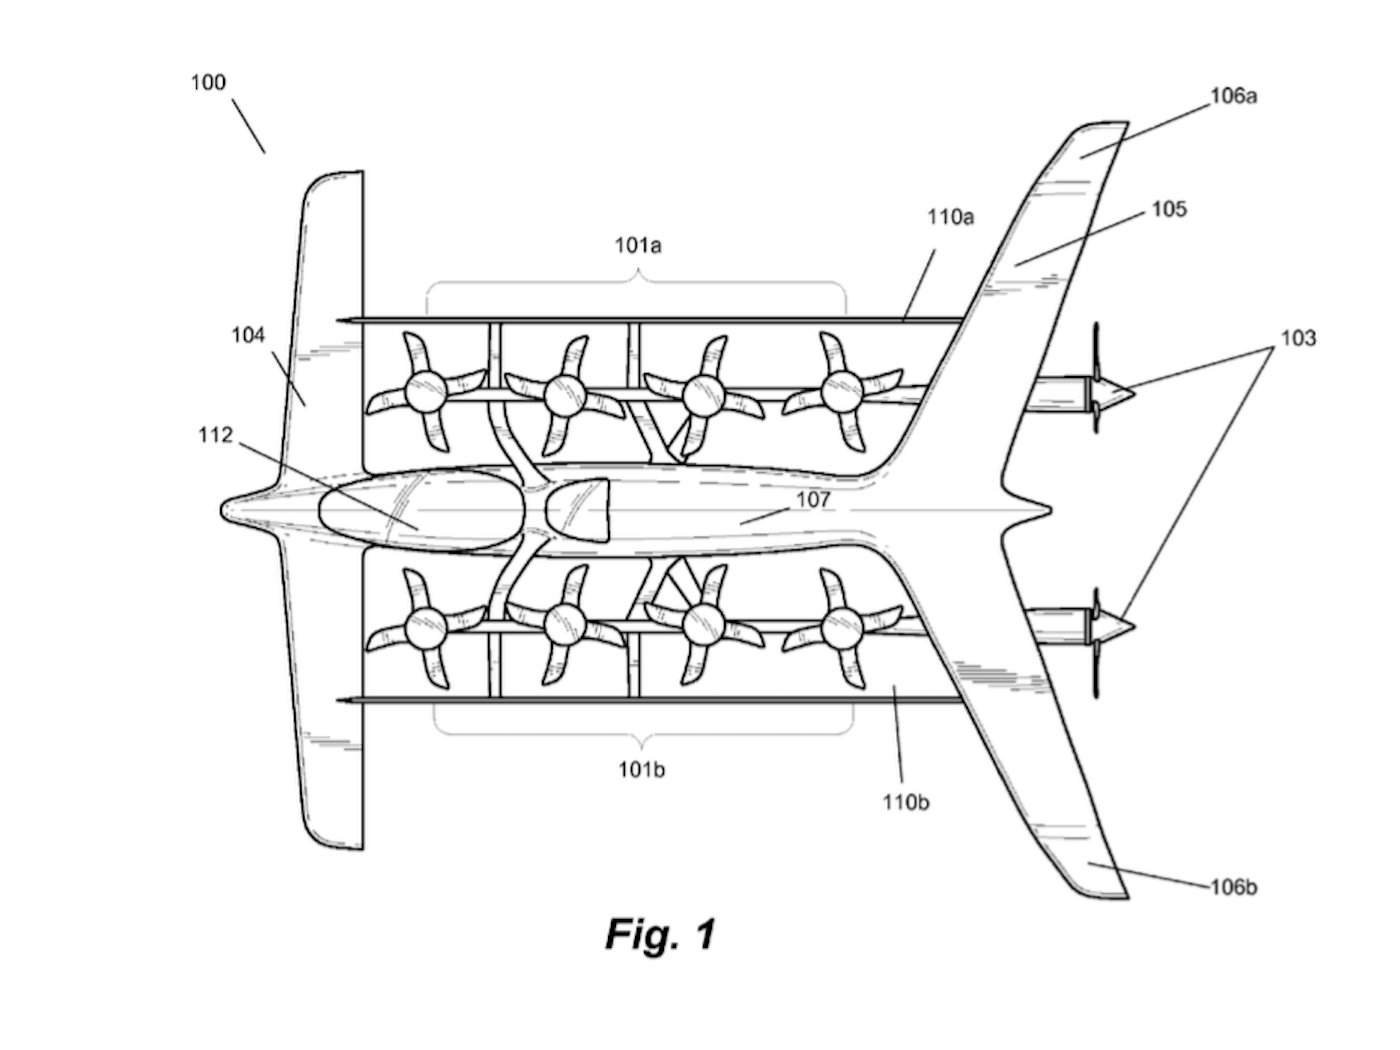 Patent Diagrams Of Flying Cars Built By Zeero Company